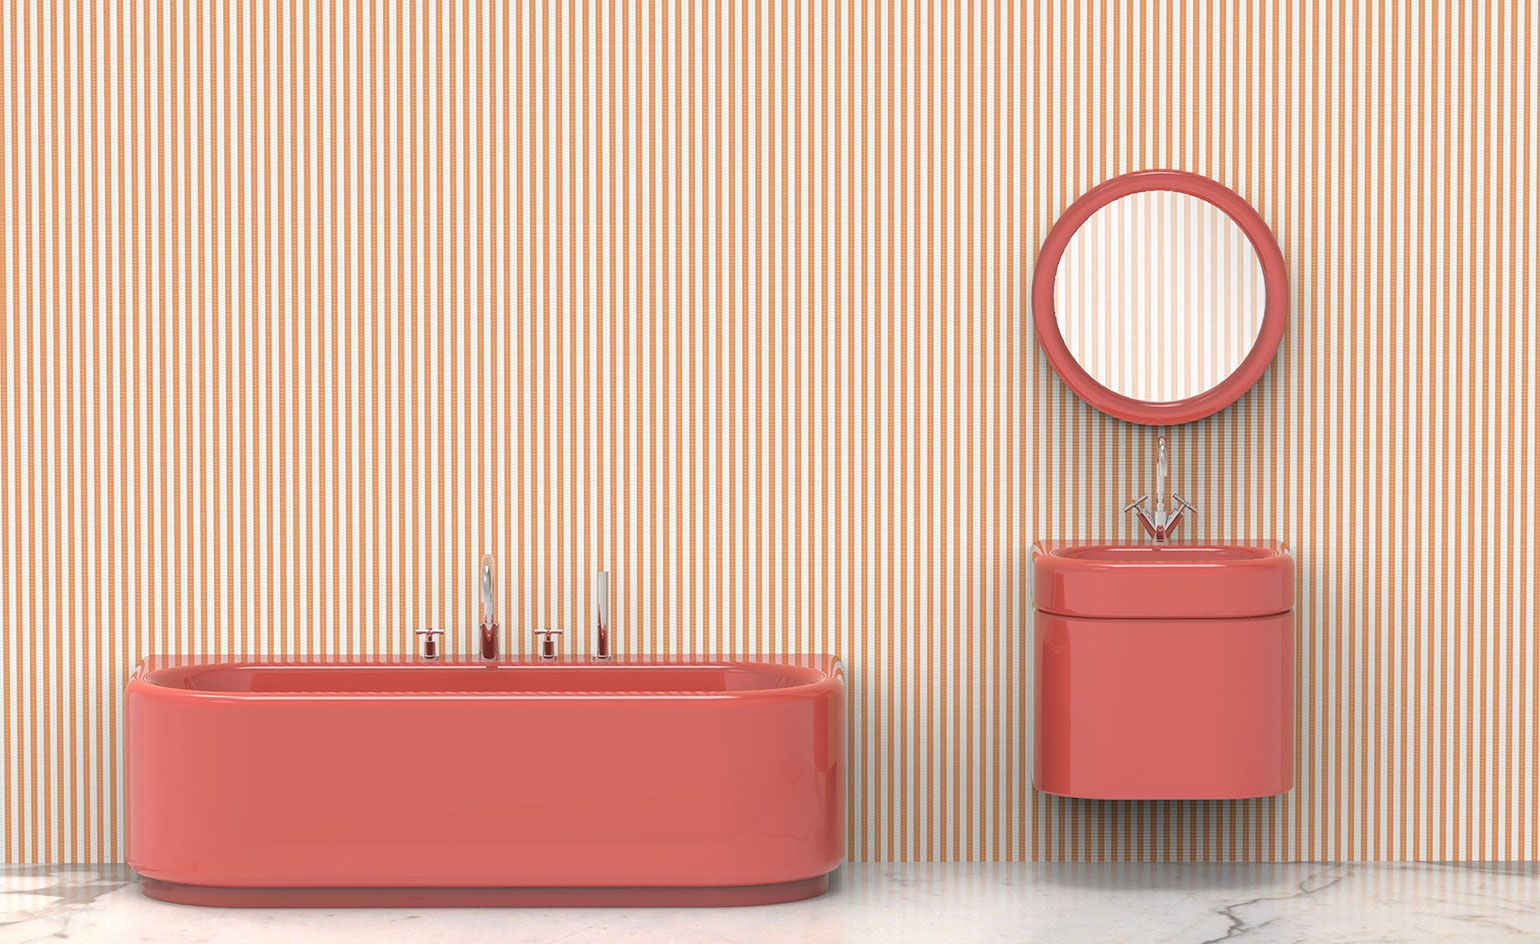 French Designer India Mahdavi Has Been Invited By Bisazza For A New Candy Hued Bathroom